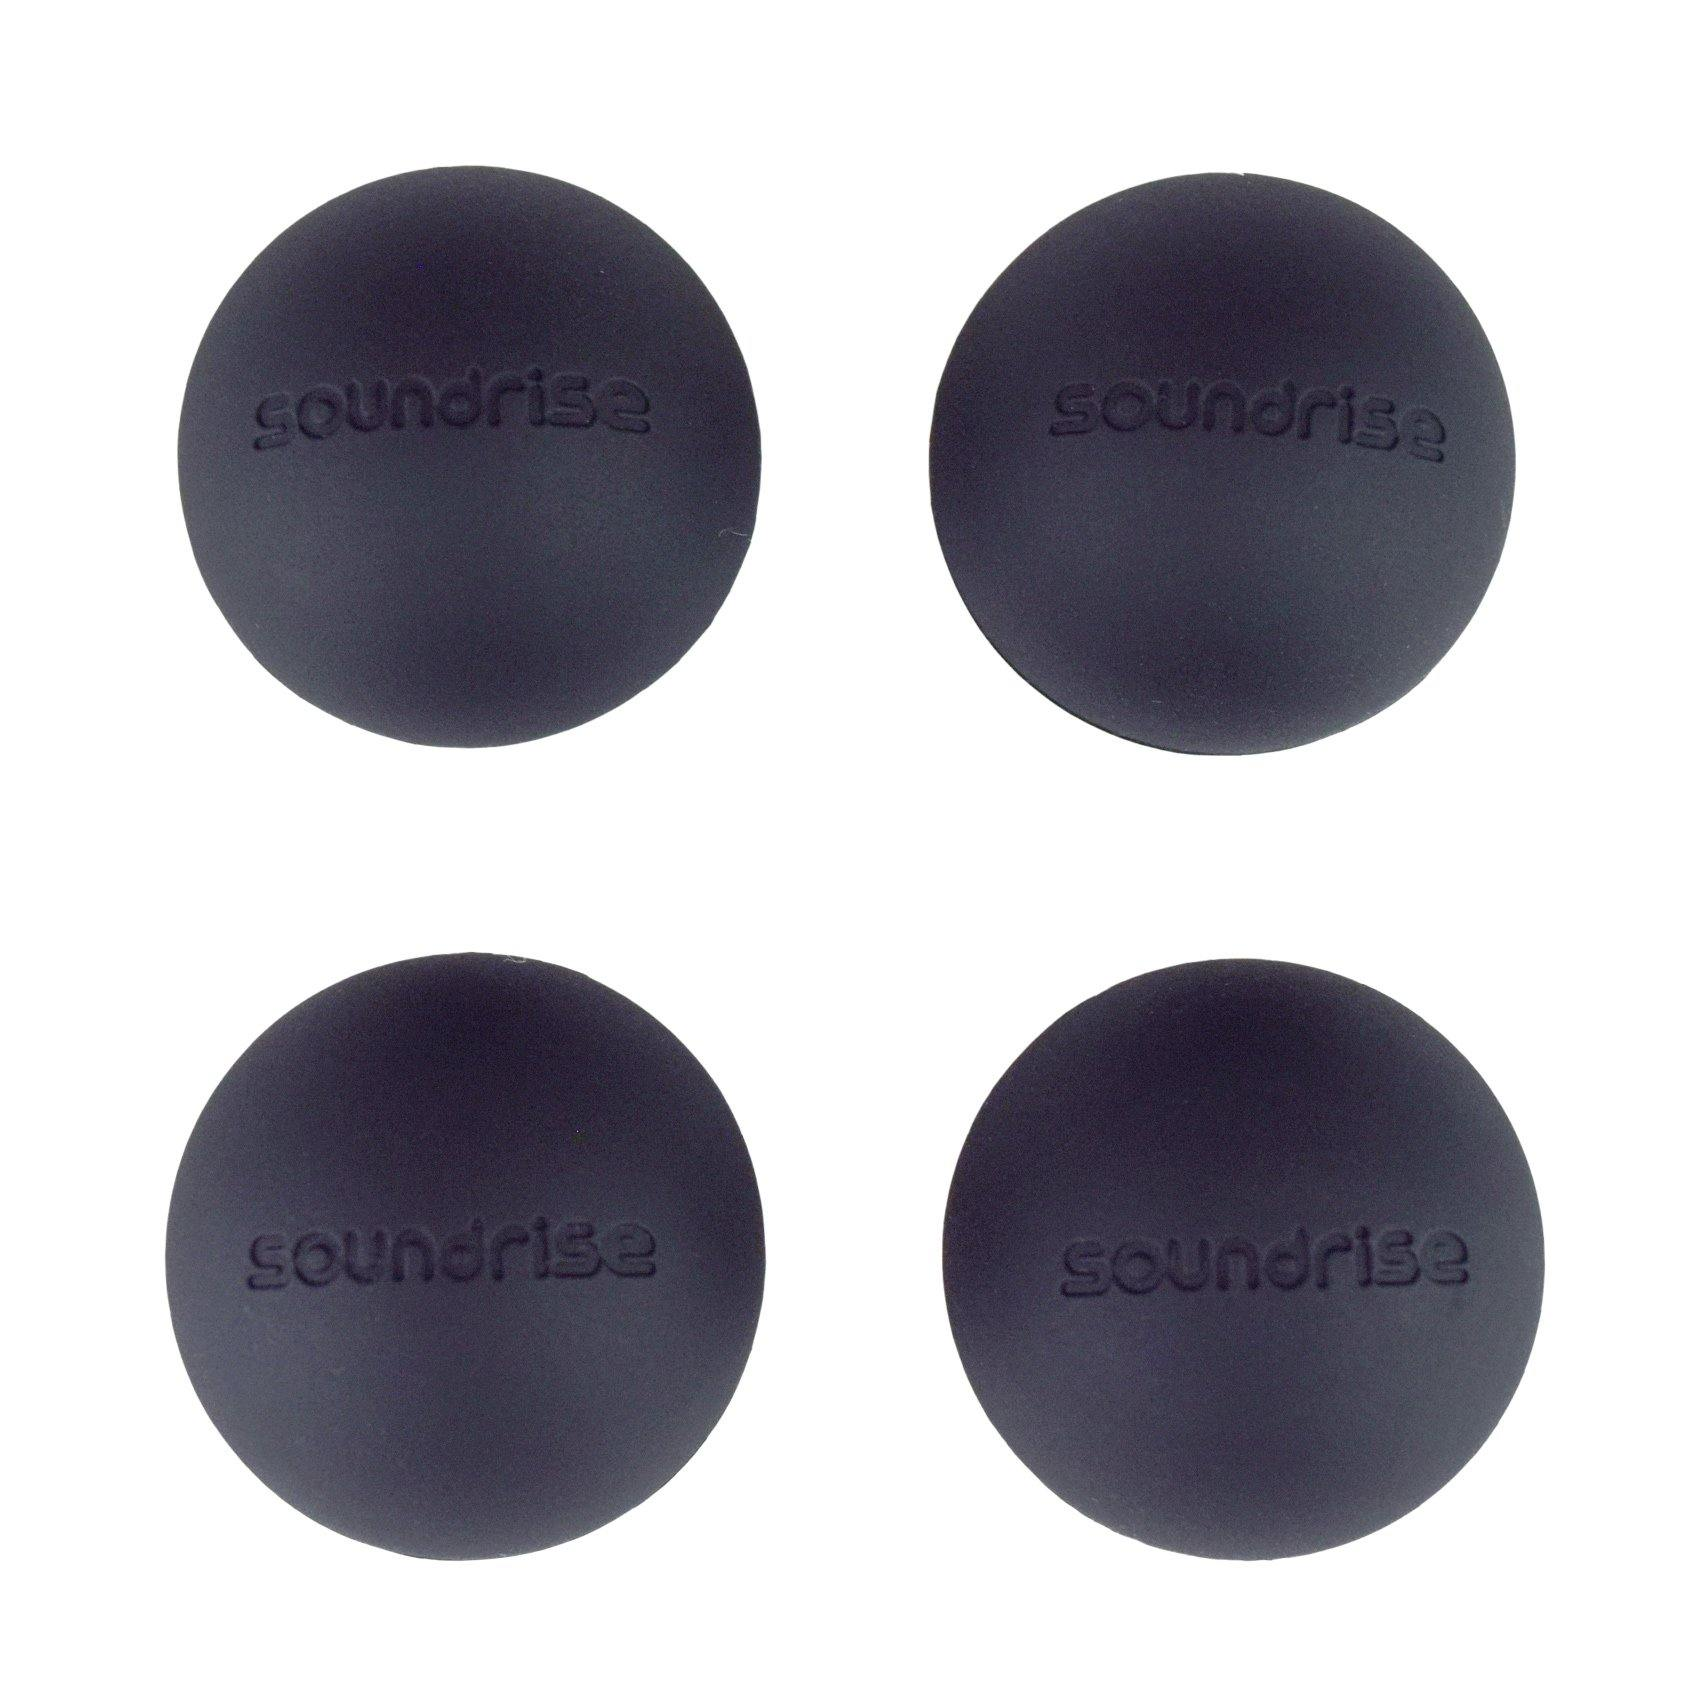 "DOMES 1.25"" Class-A Silicone Vibration Isolation Pads Self-Adhesive"